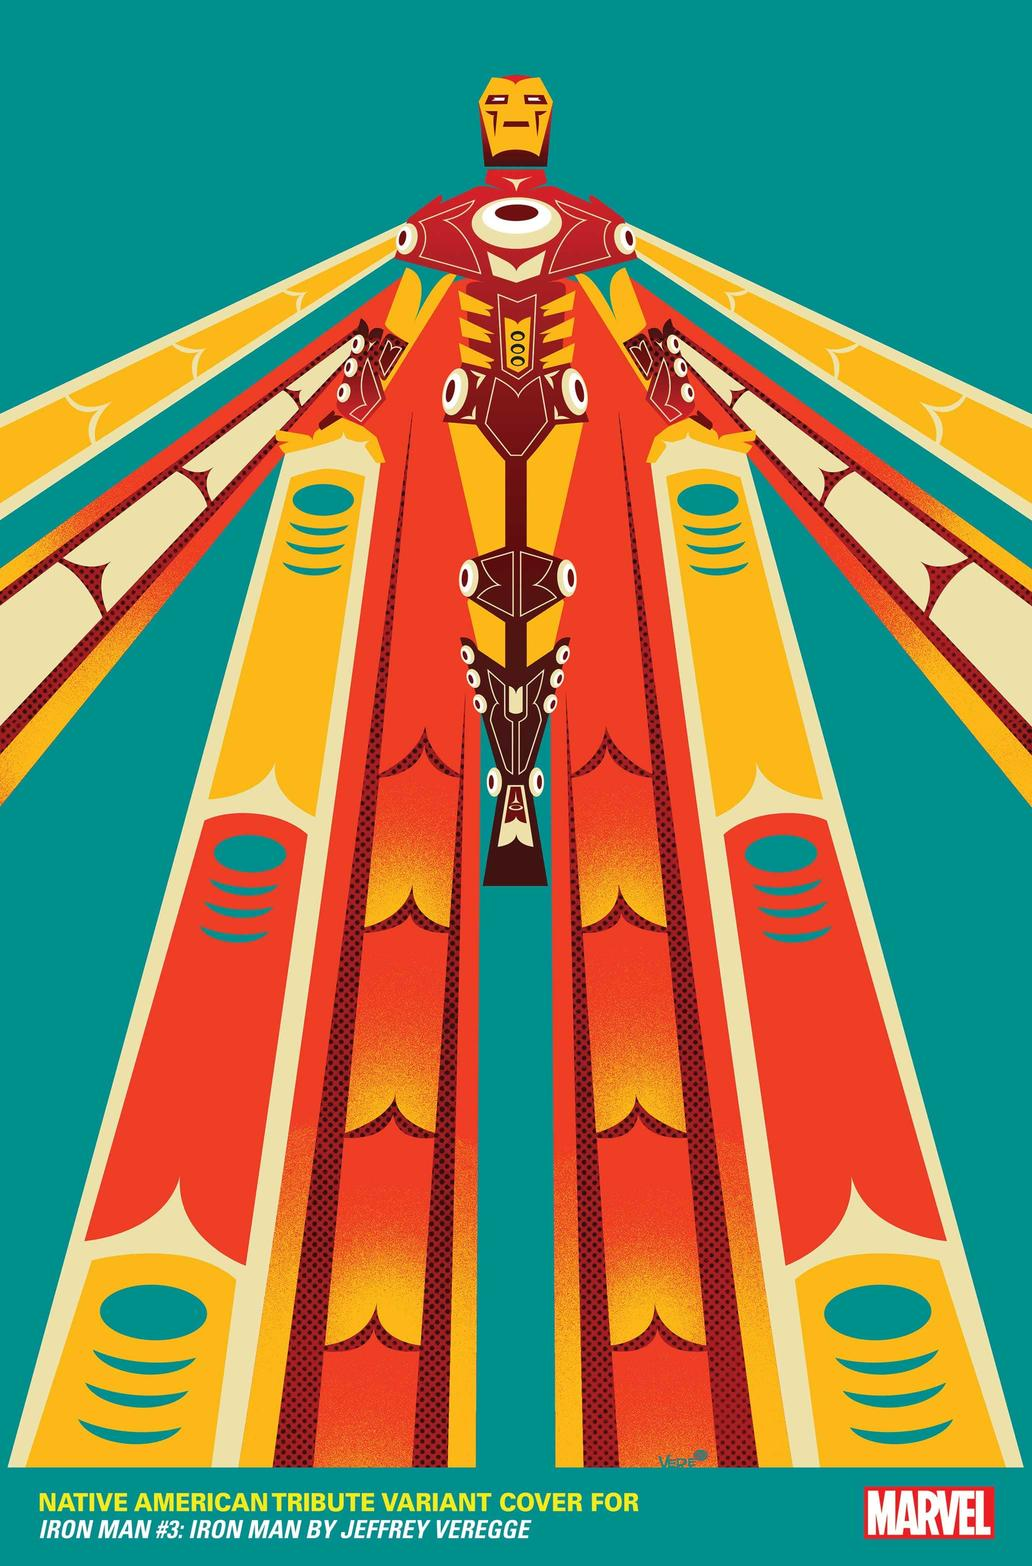 Native American variant by Jeffrey Veregge